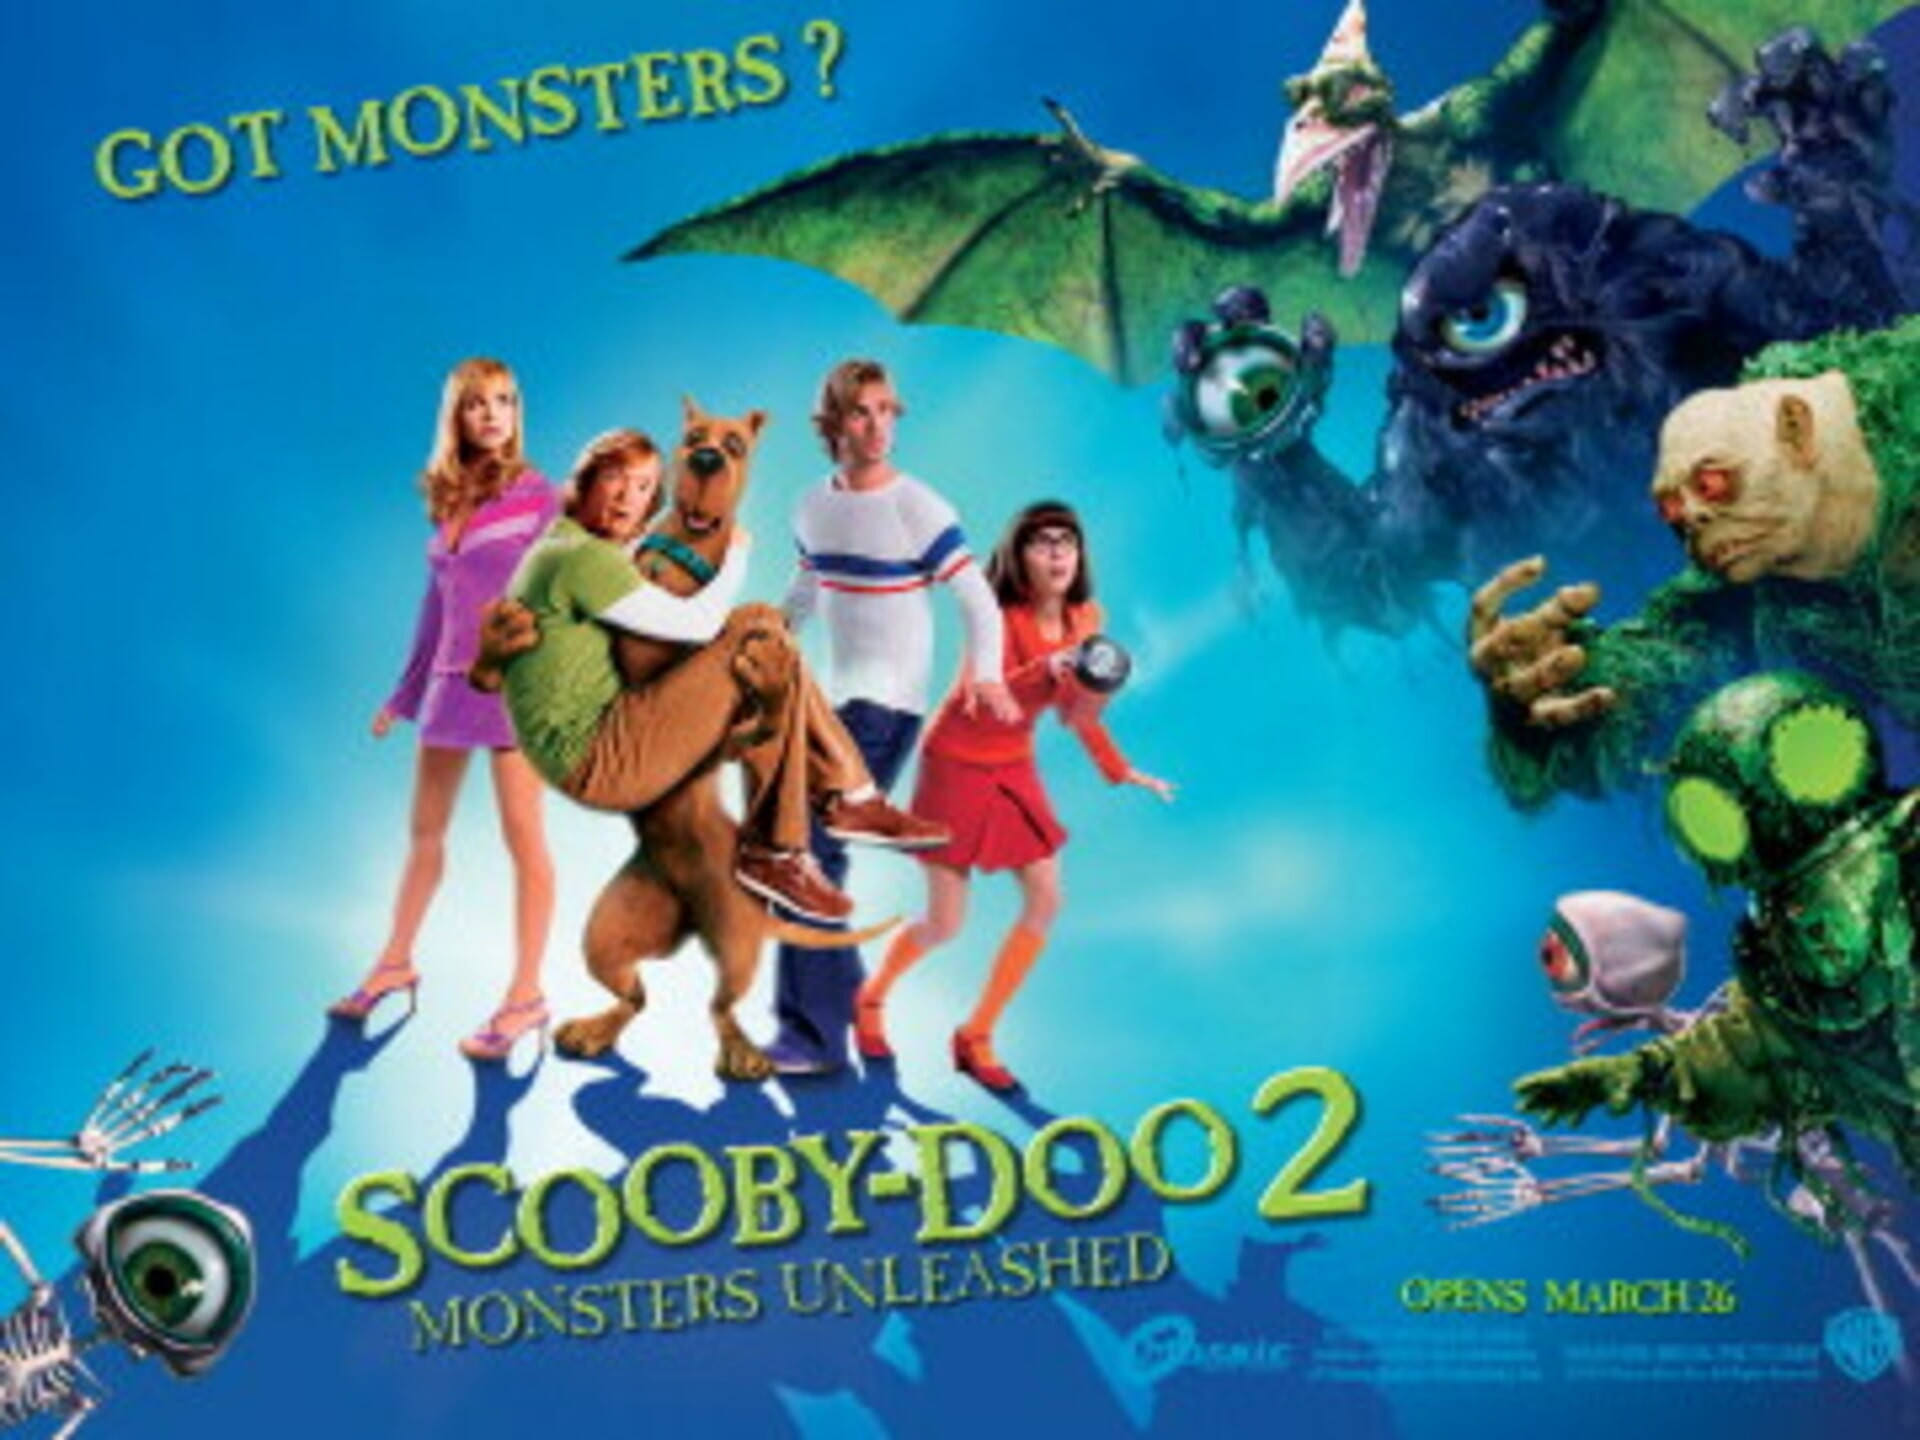 Scooby-Doo 2: Monsters Unleashed - Image 1